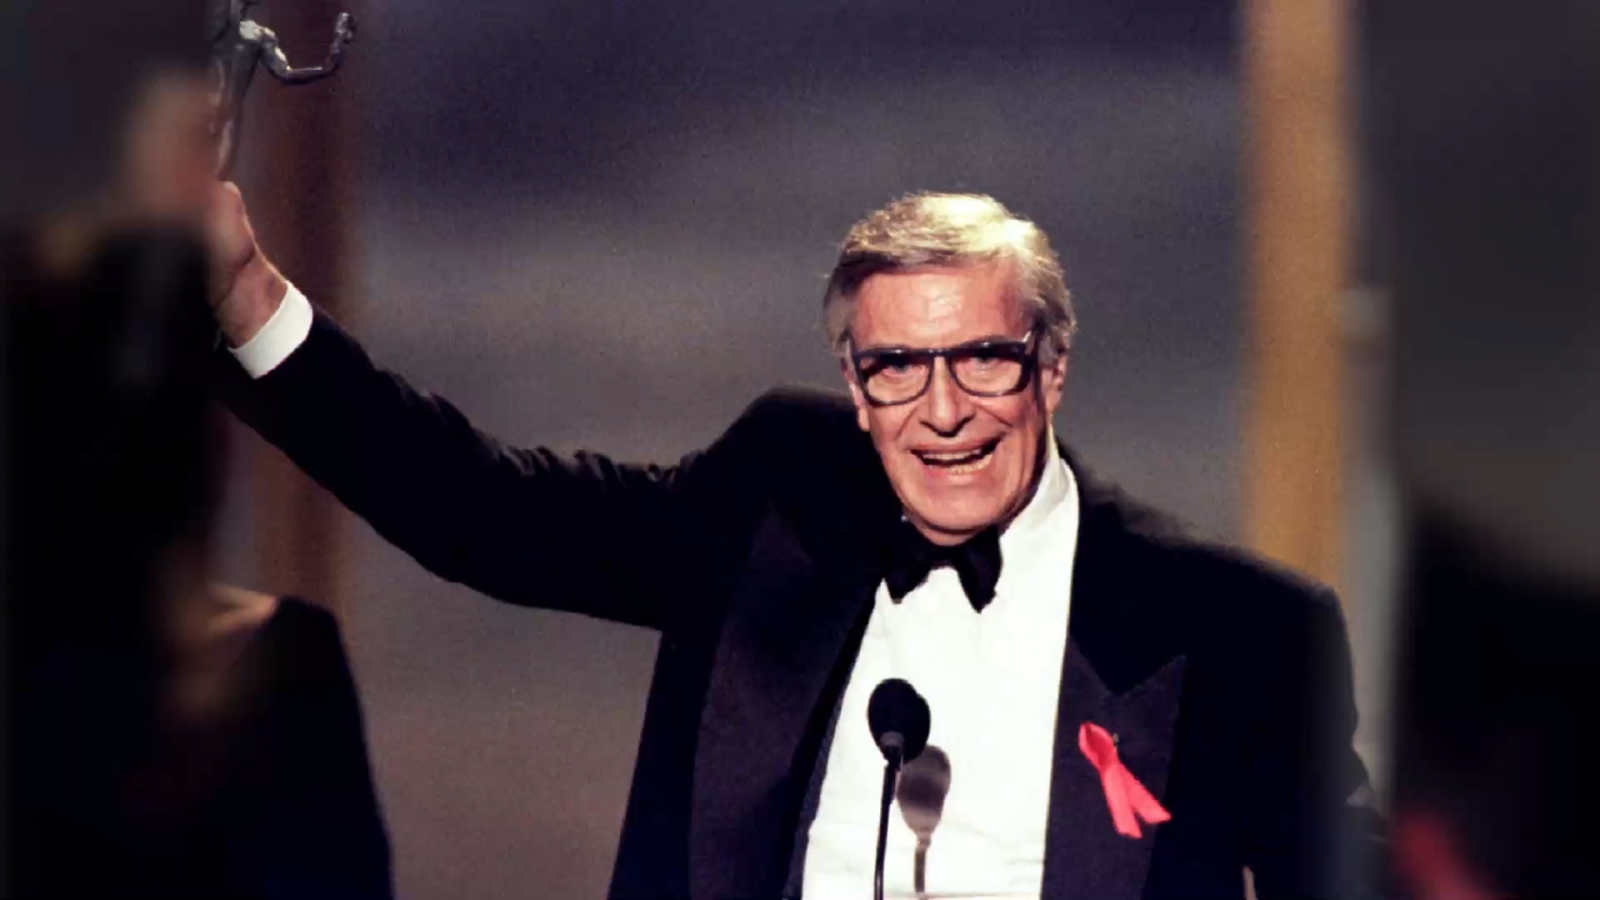 Mission Impossible actor Martin Landau dies aged 89